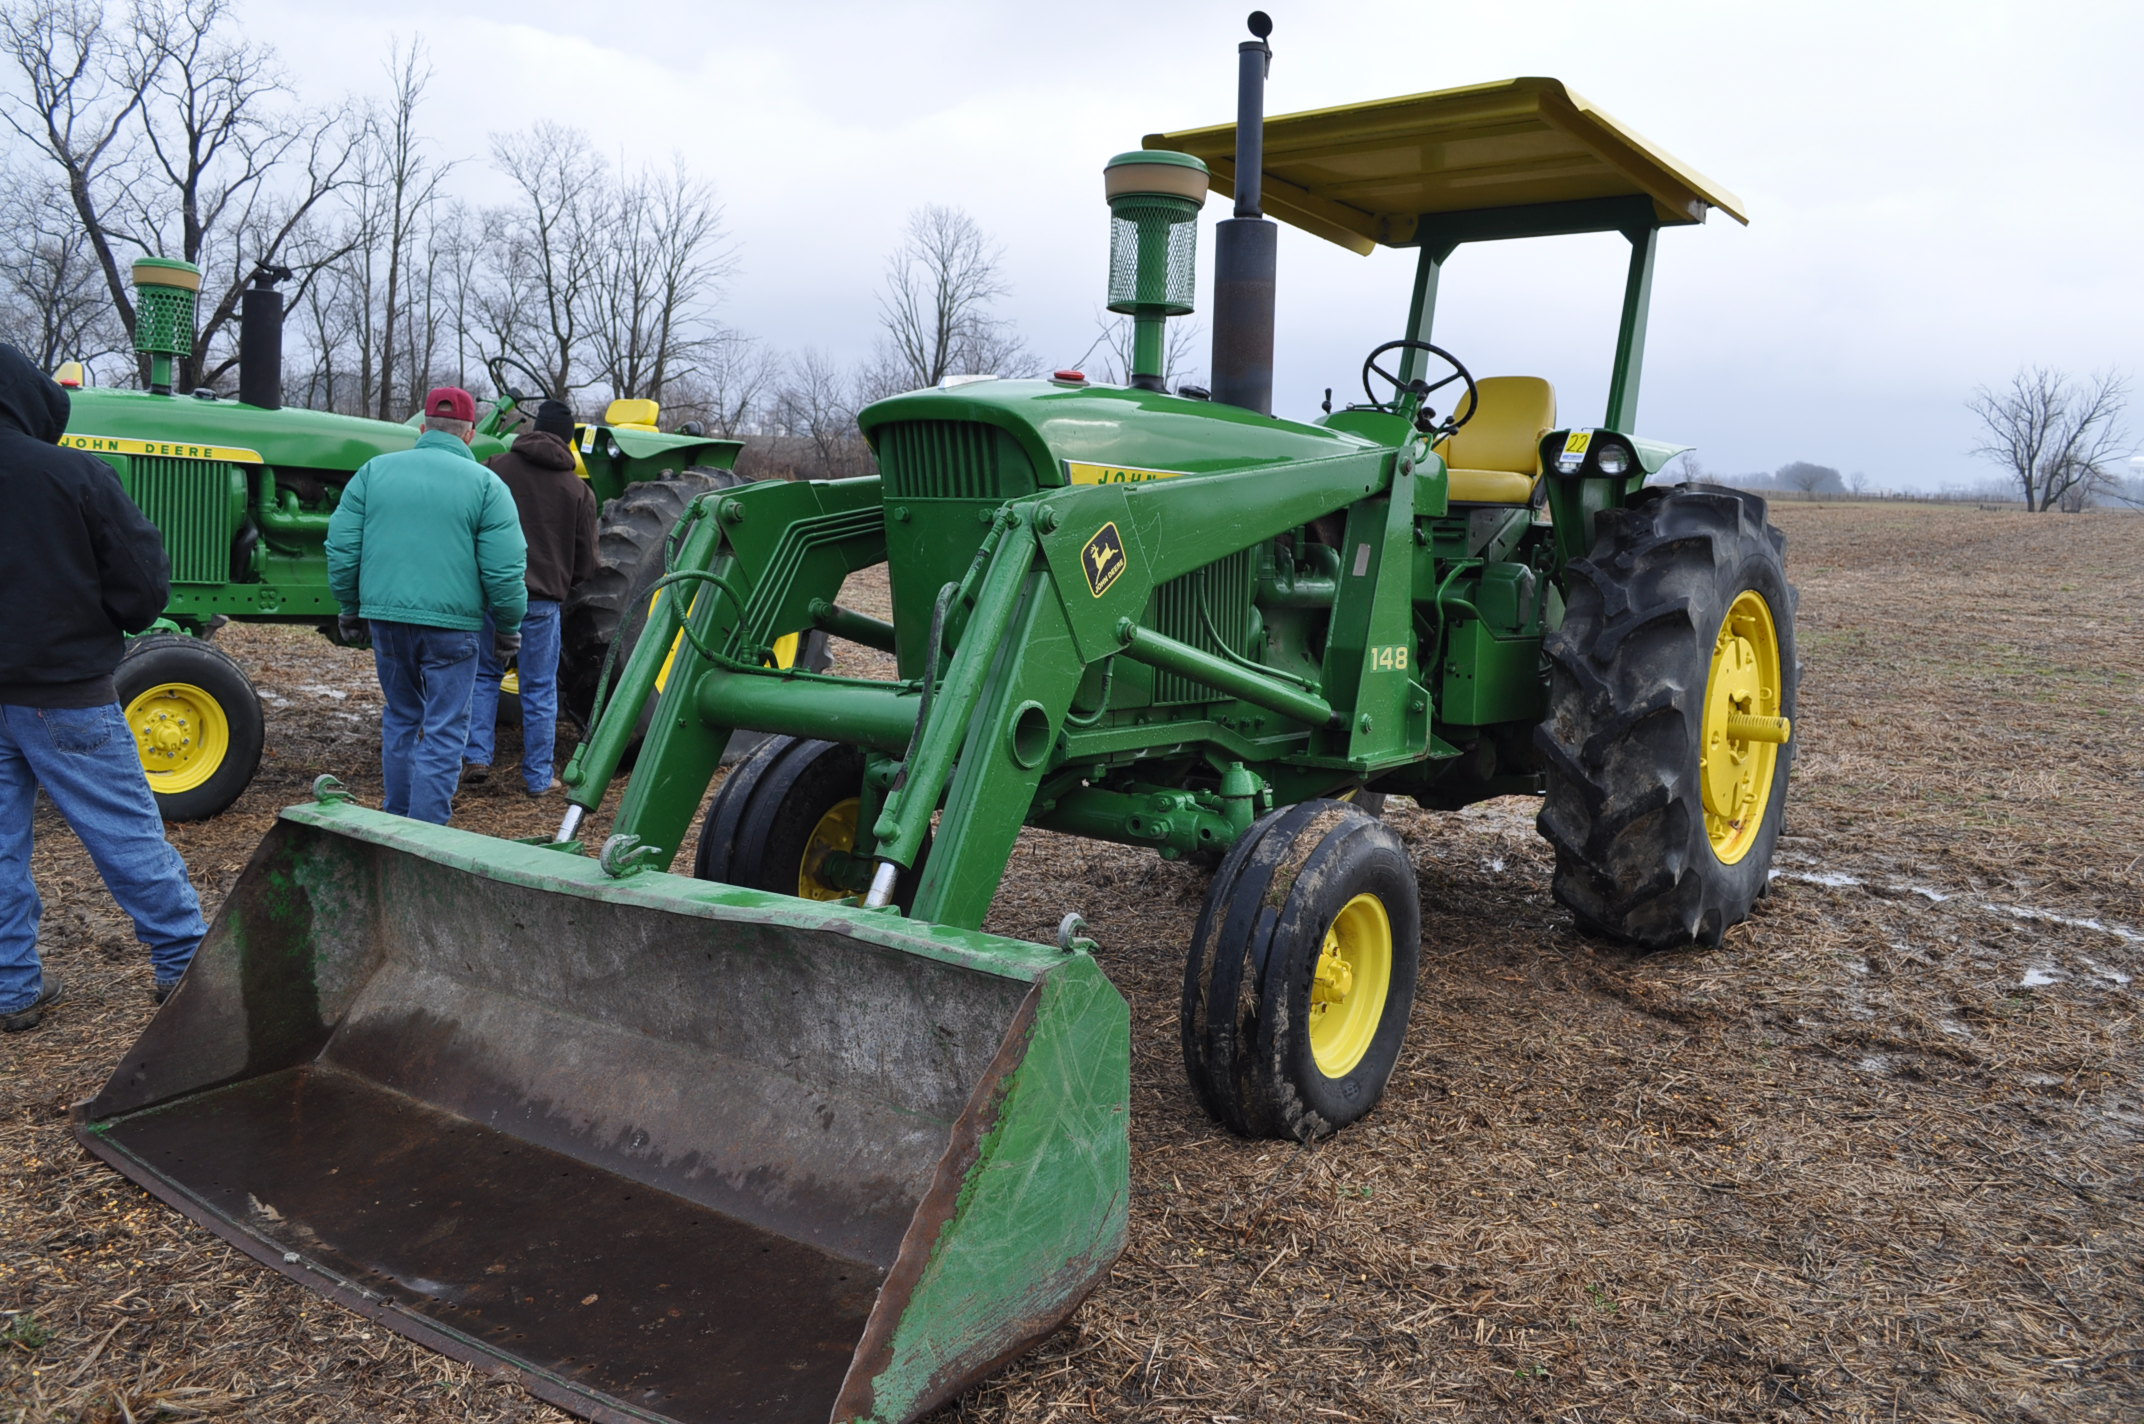 John Deere 4020 tractor, diesel, 18.4-34 tires w/ clamp on dual rims, 11L-15 front, ROPS w/